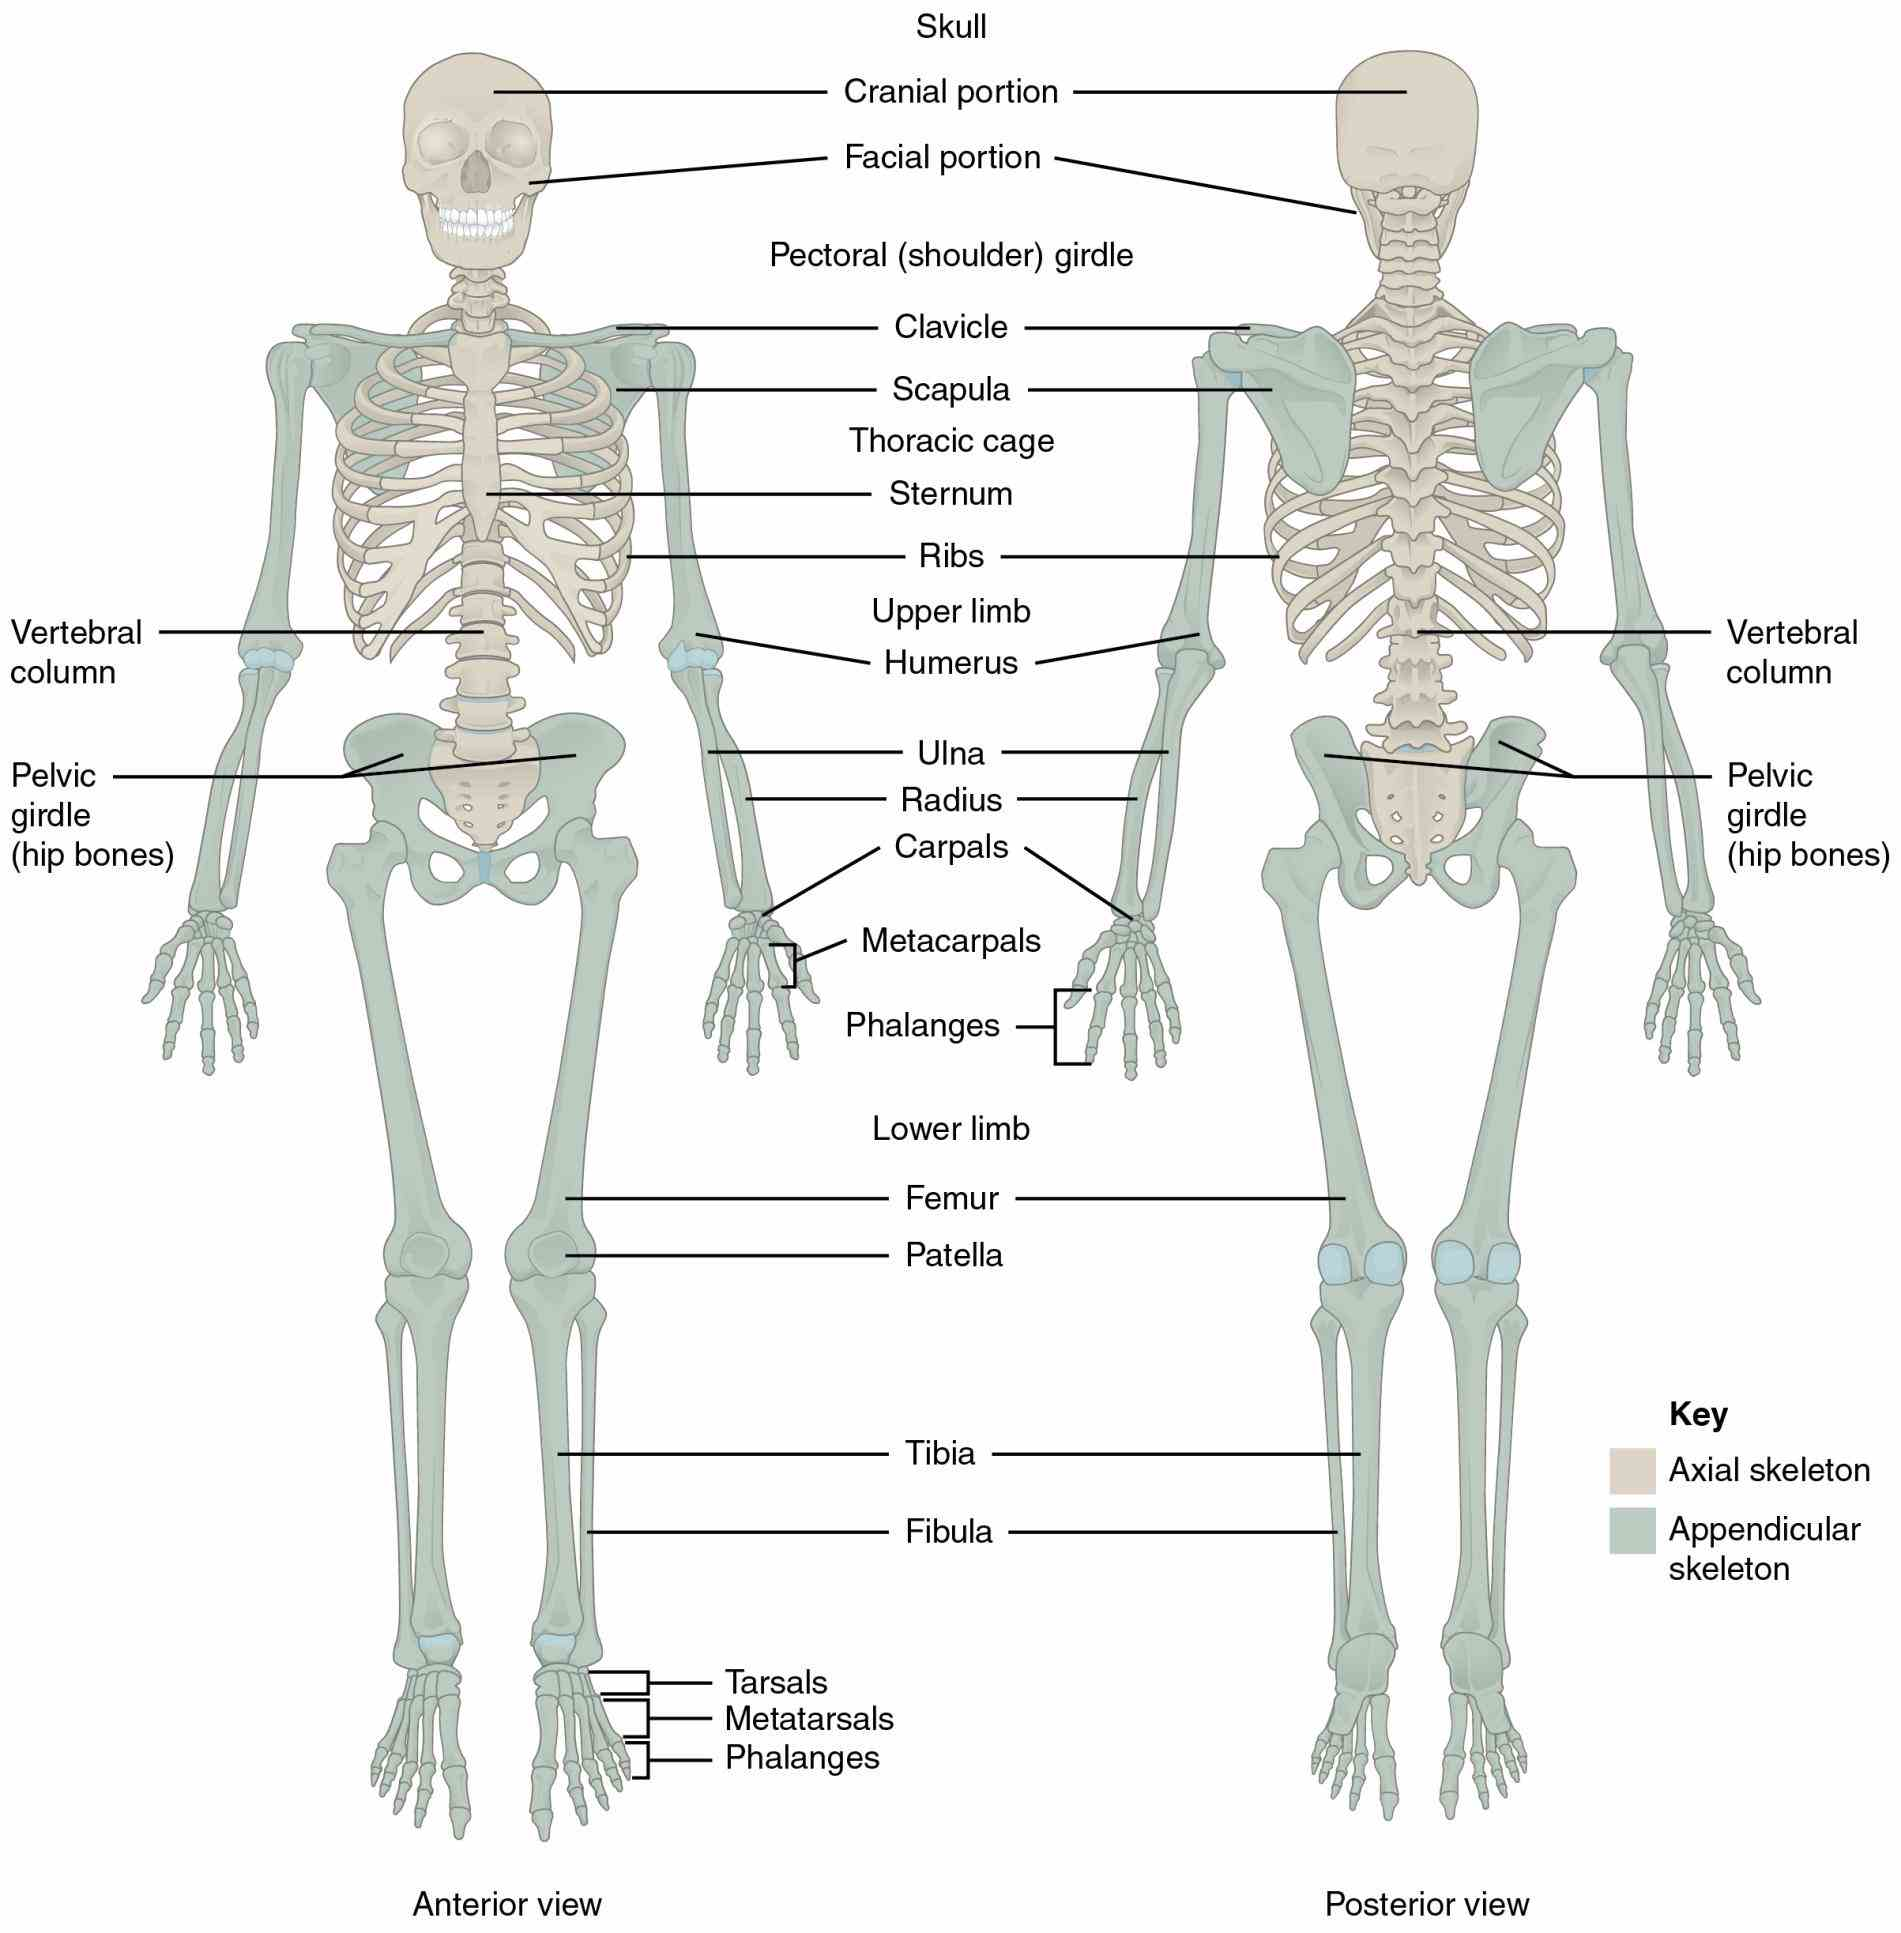 the Appendicular Skeleton Structure Anatomy axial skeleton includes all bones that form bony structures along bodys long axis